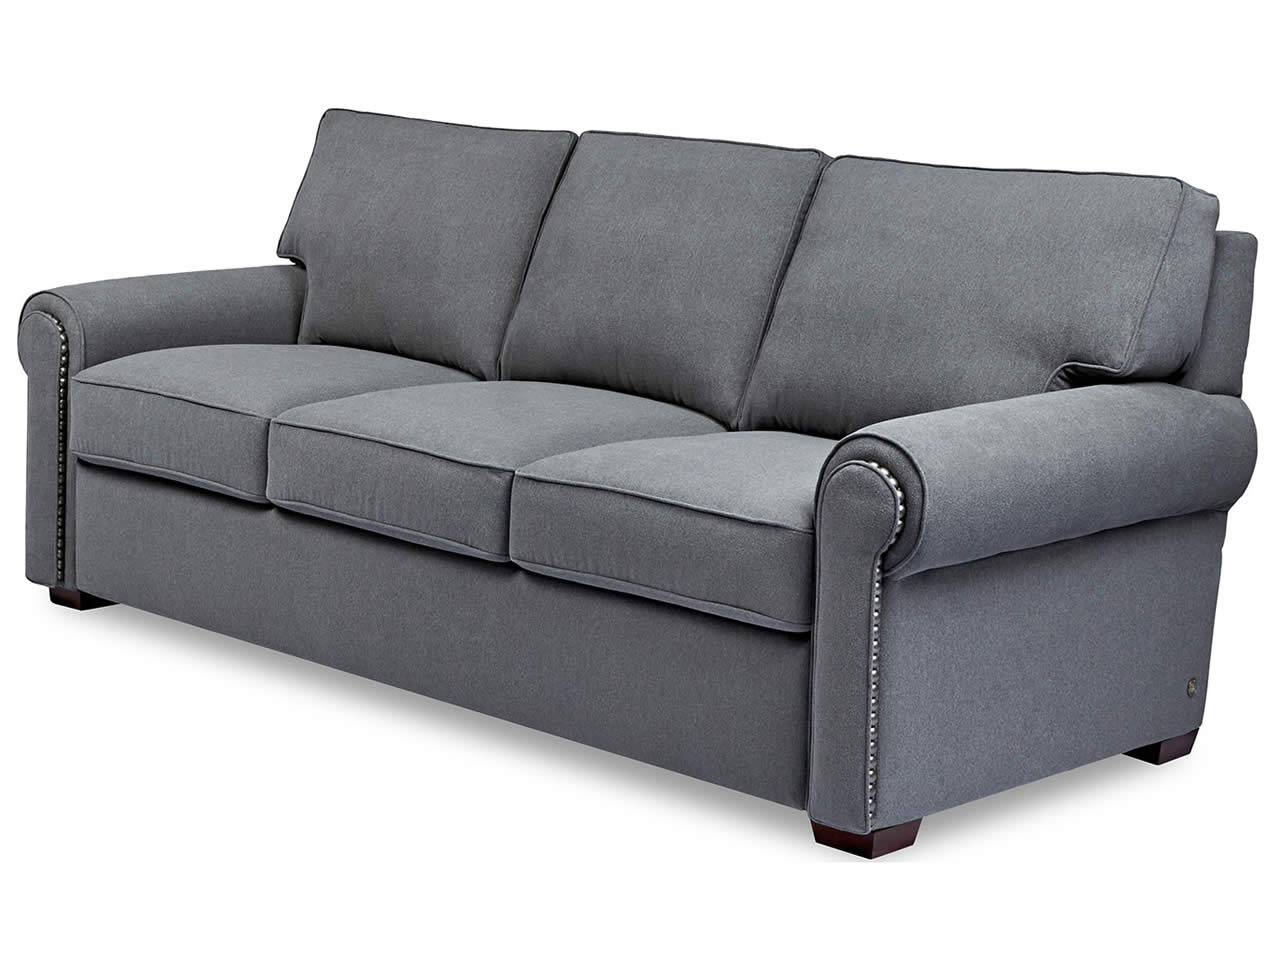 Sofa Ashley Milari Nailhead Sleeper Sofa Alan White Sofas Accent